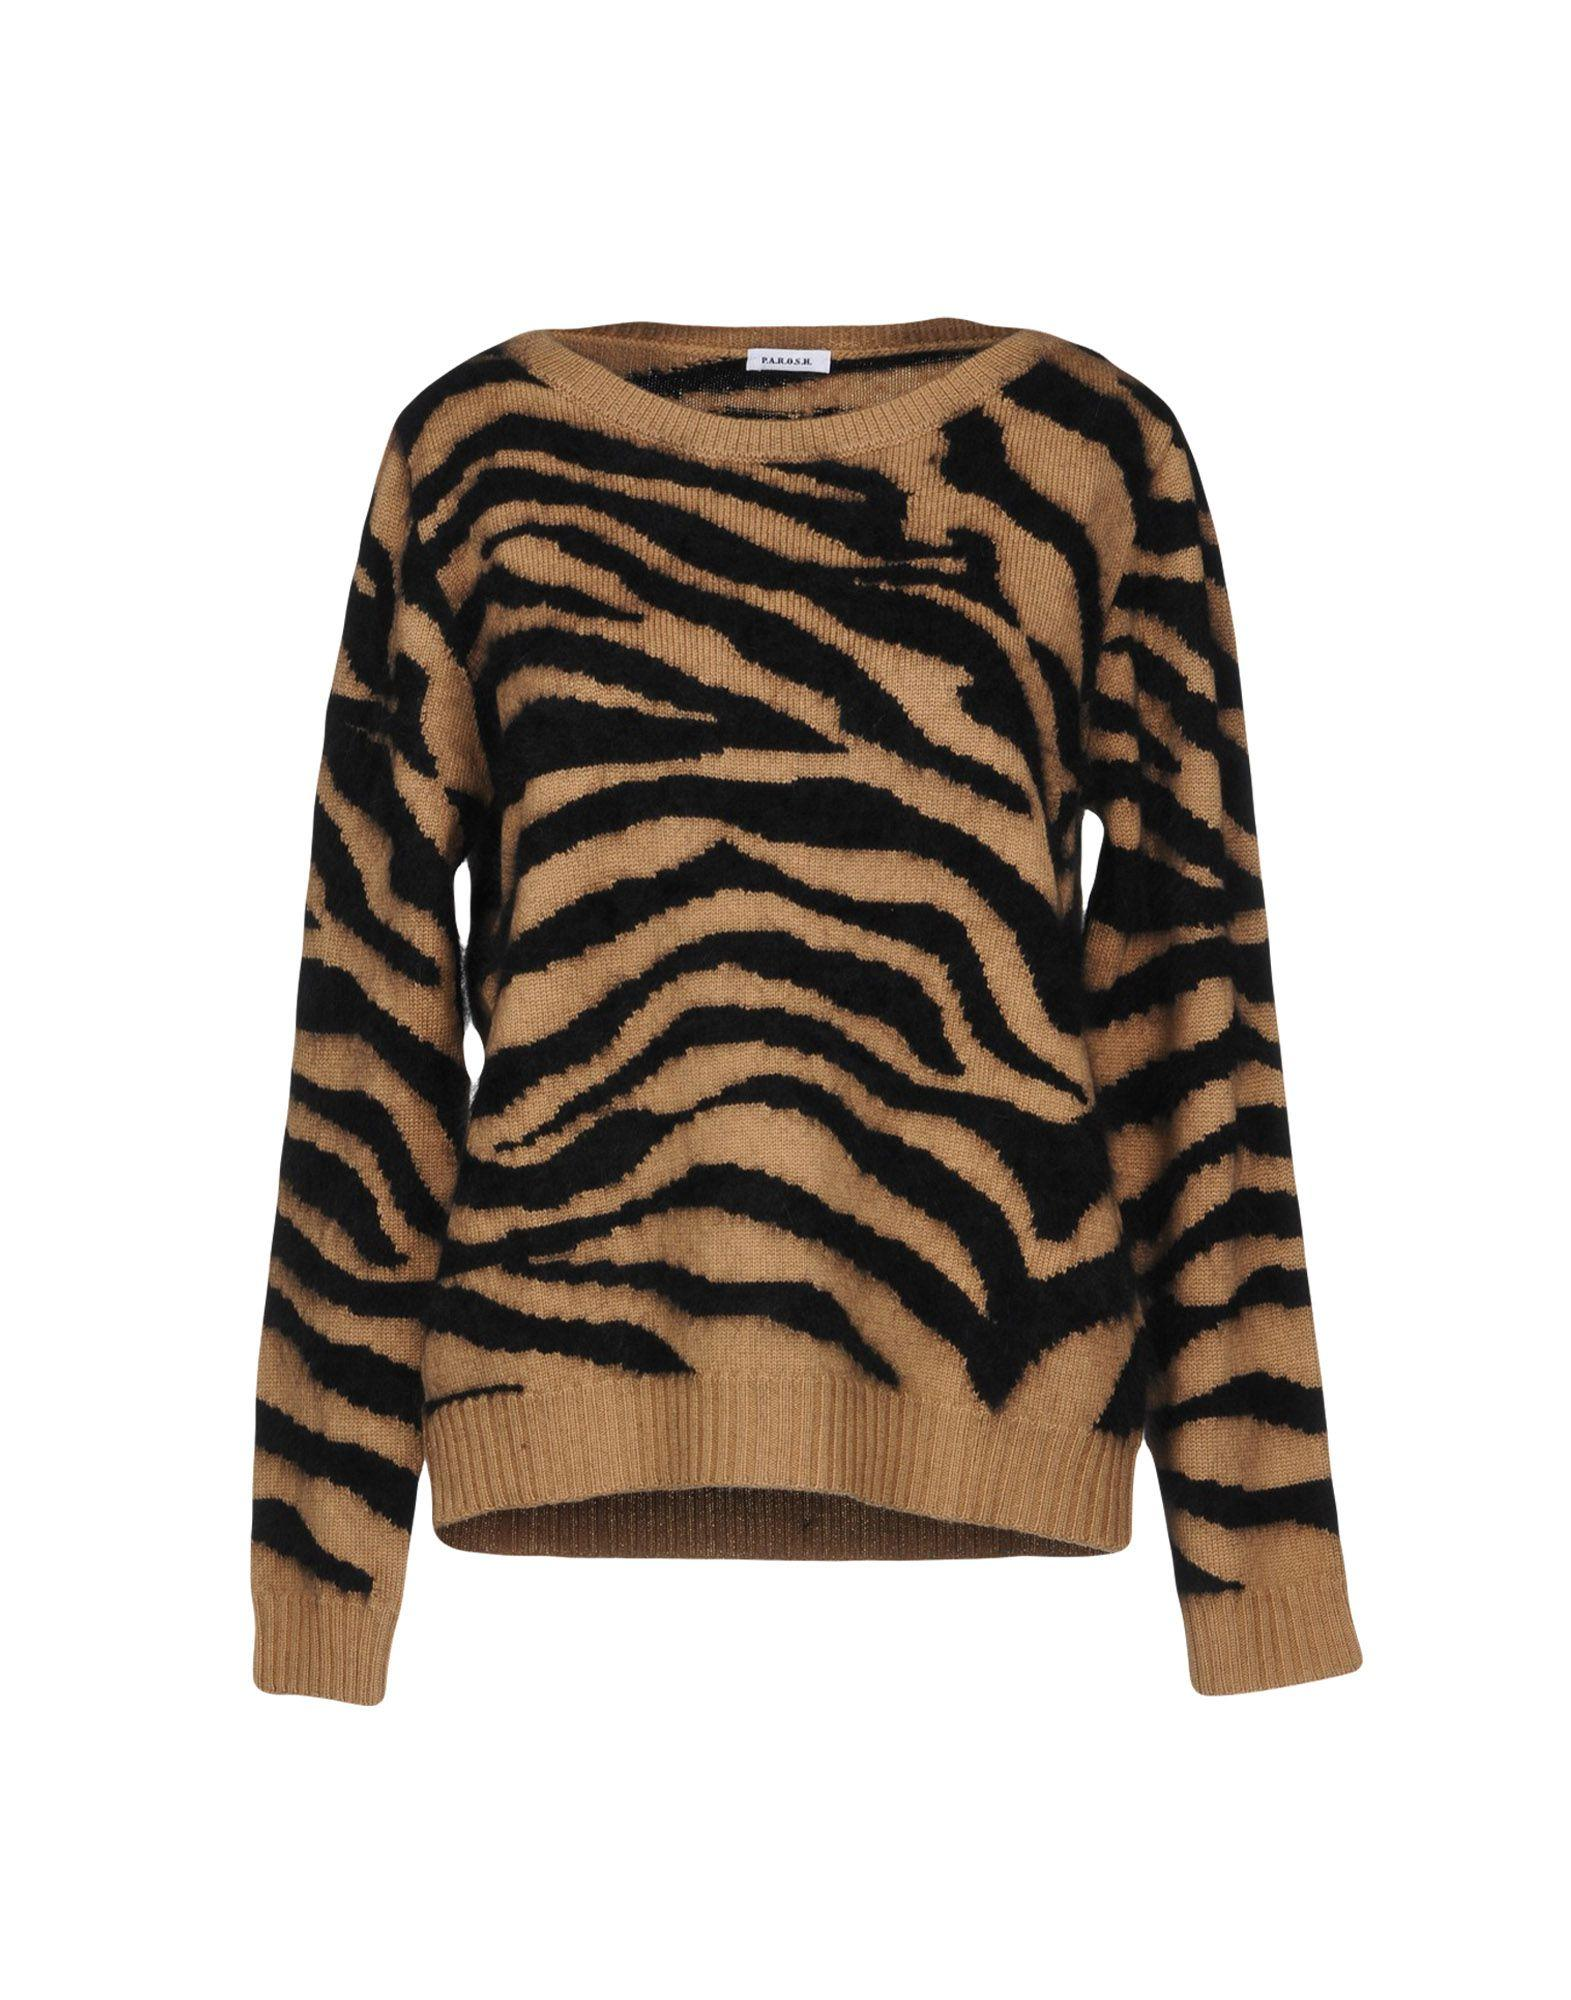 P.a.r.o.s.h. Sweater In Camel